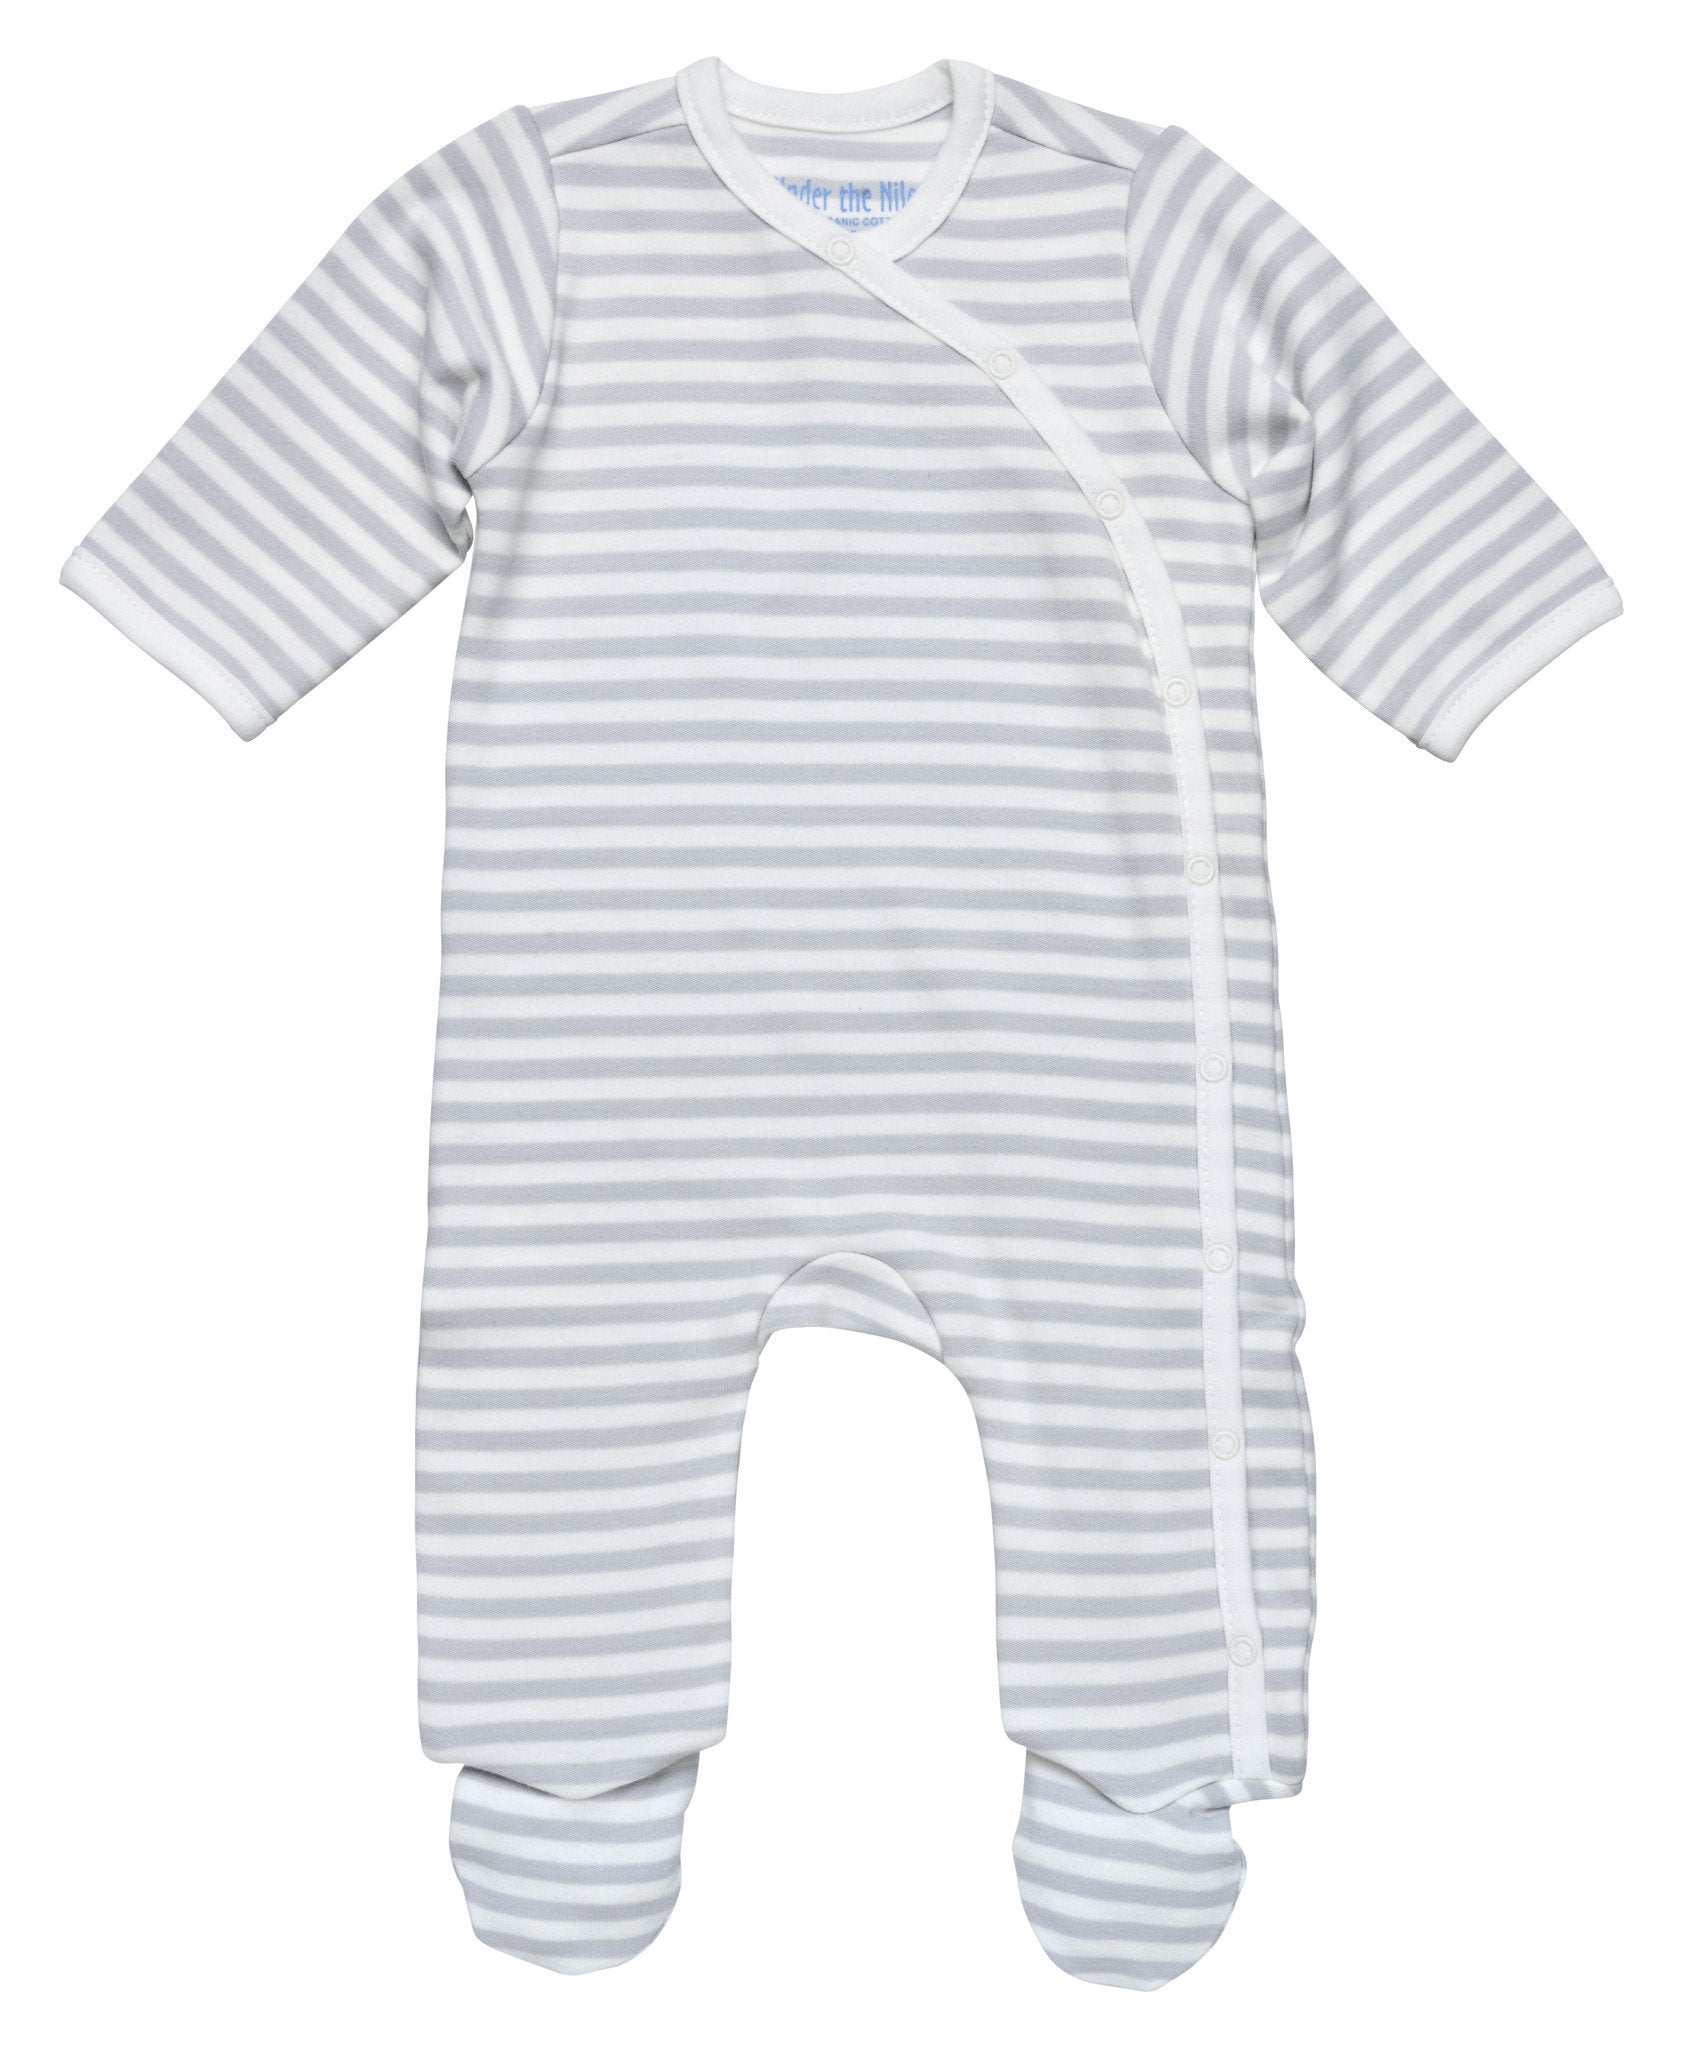 Side-Snap Grey Stripe Footie - Under the Nile - Camila New York